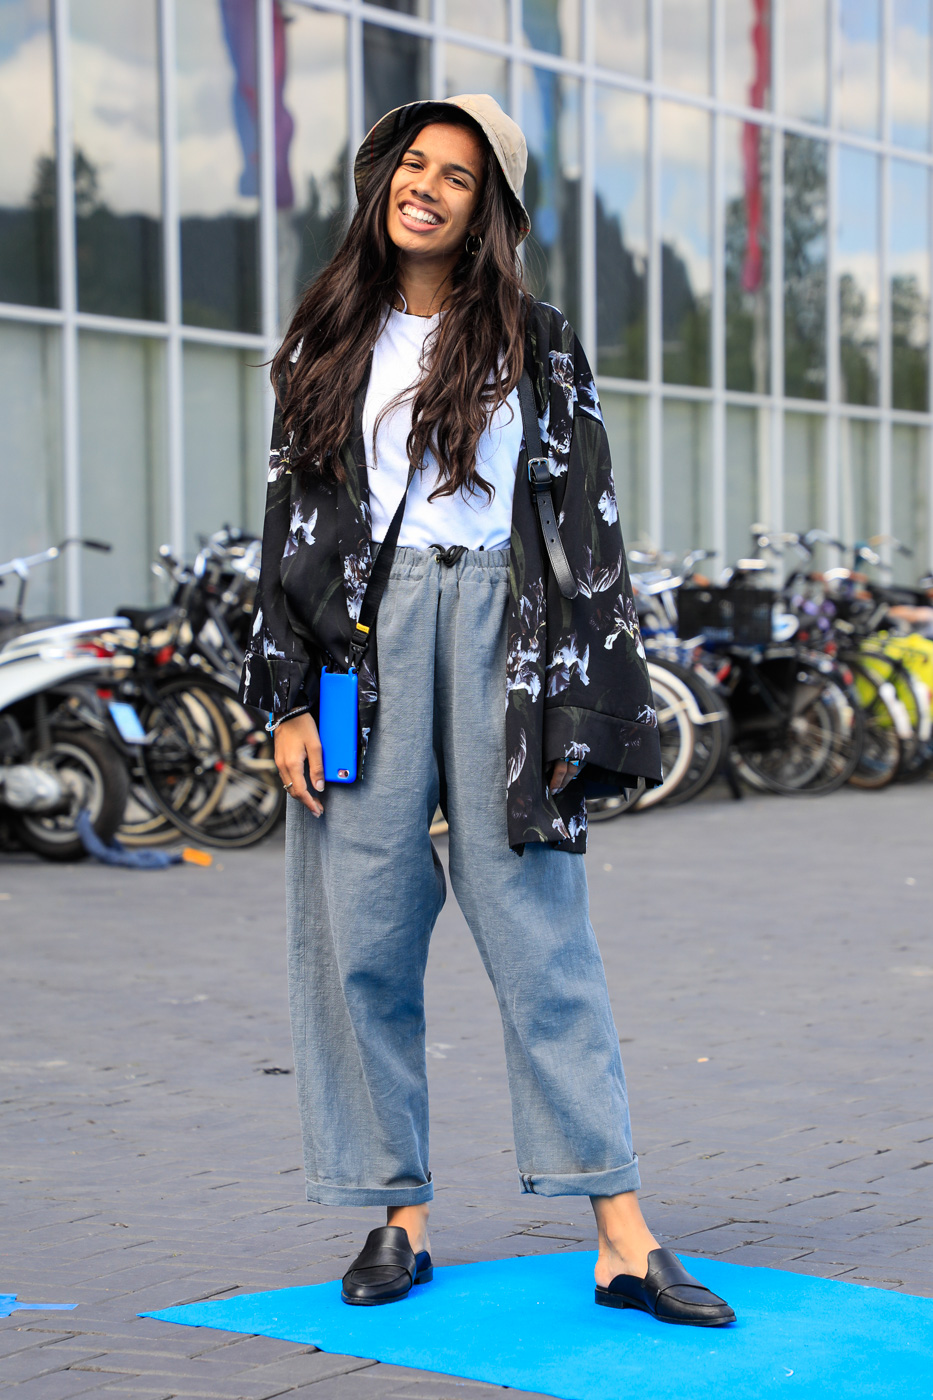 Streetwear at De Modefabriek July 2019